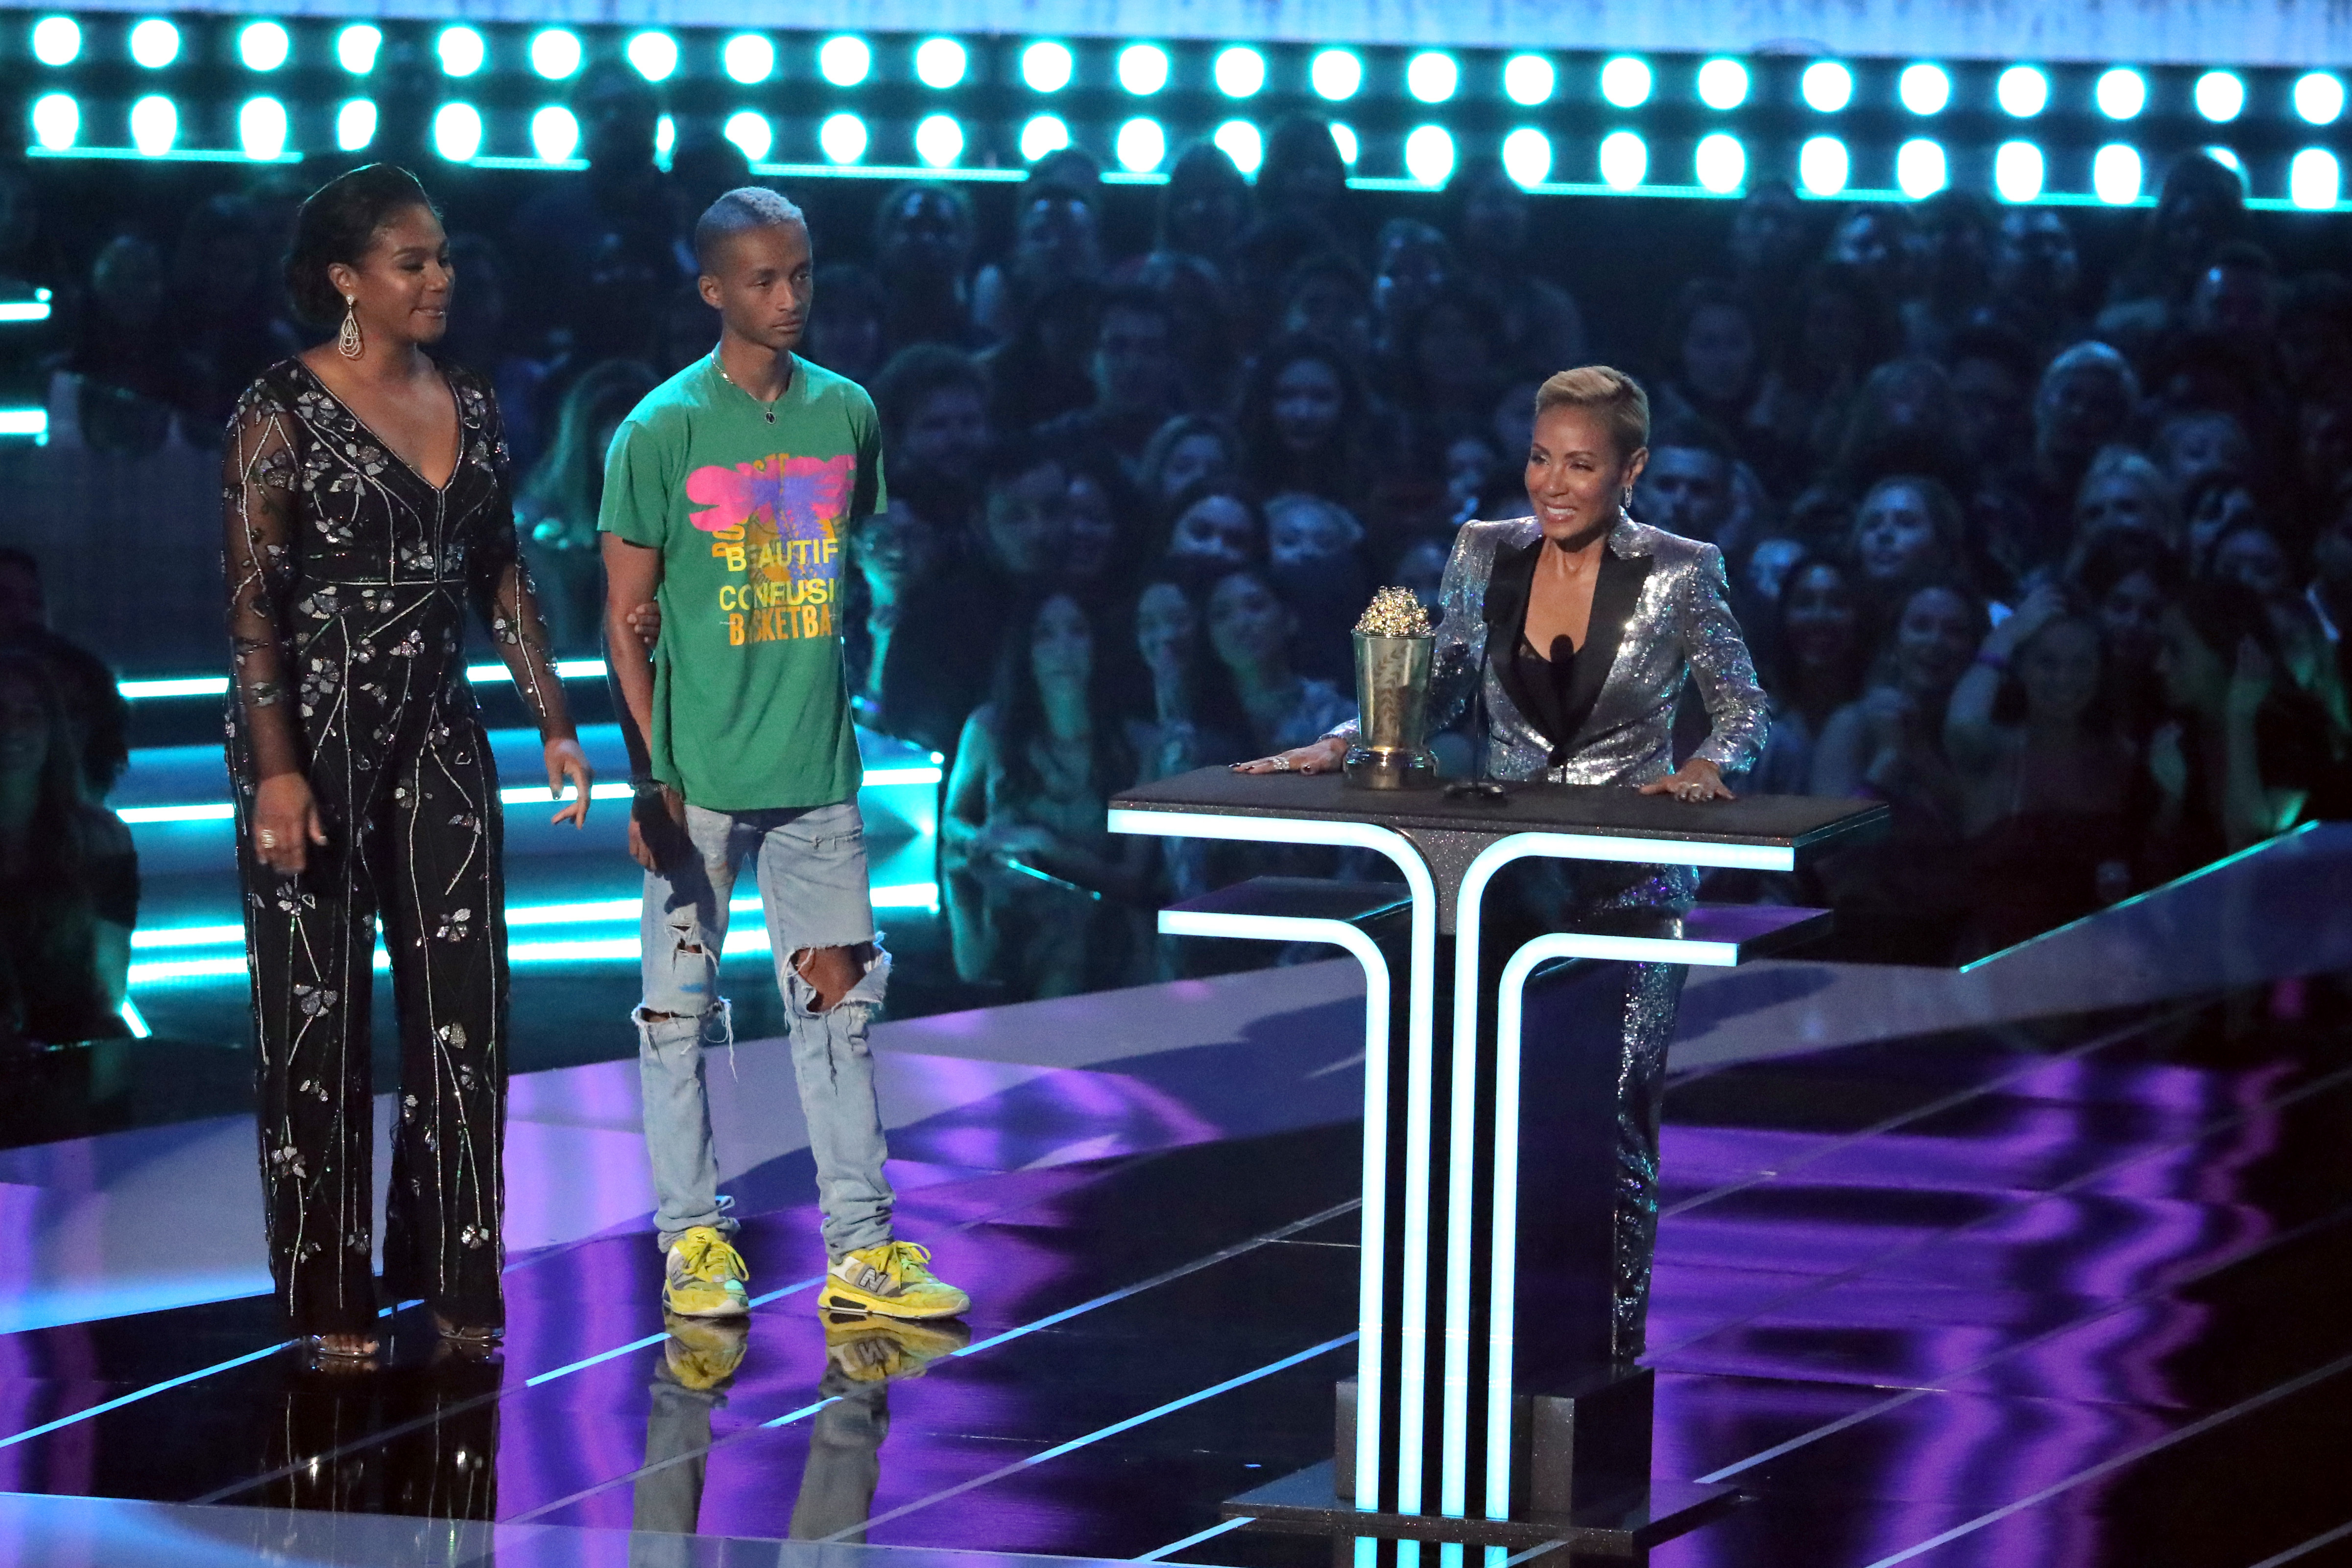 Jada Pinkett Smith accepts the Trailblazer Award with Jaden Smith after being presented by Tiffany Haddish during the MTV Movie & TV Awards in Santa Monica, California, on June 15, 2019.